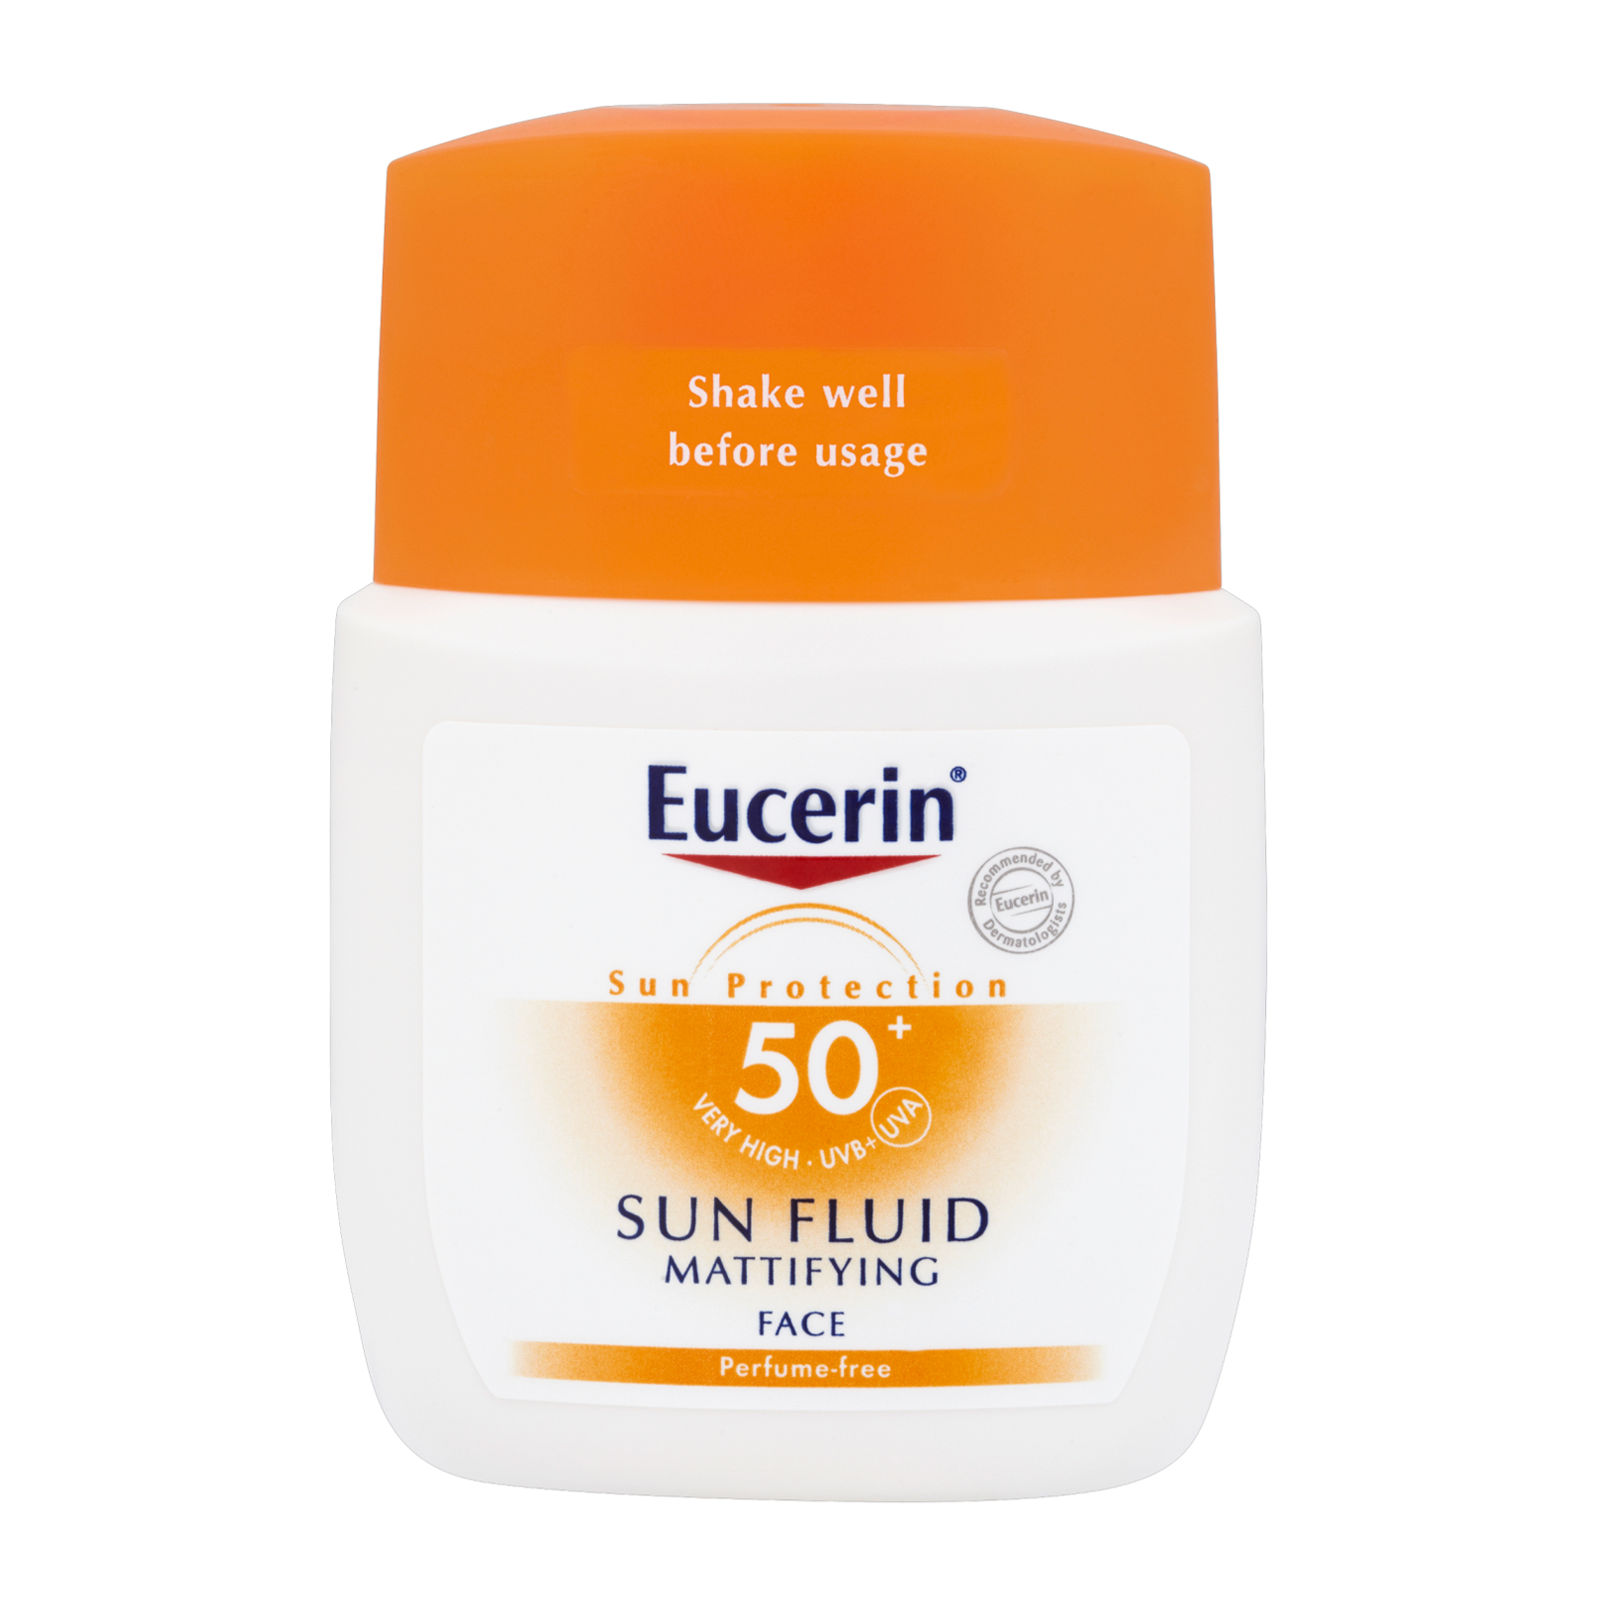 Eucerin_Sun_nbsp_Face_Mattifying_Fluid_SPF50_50ml